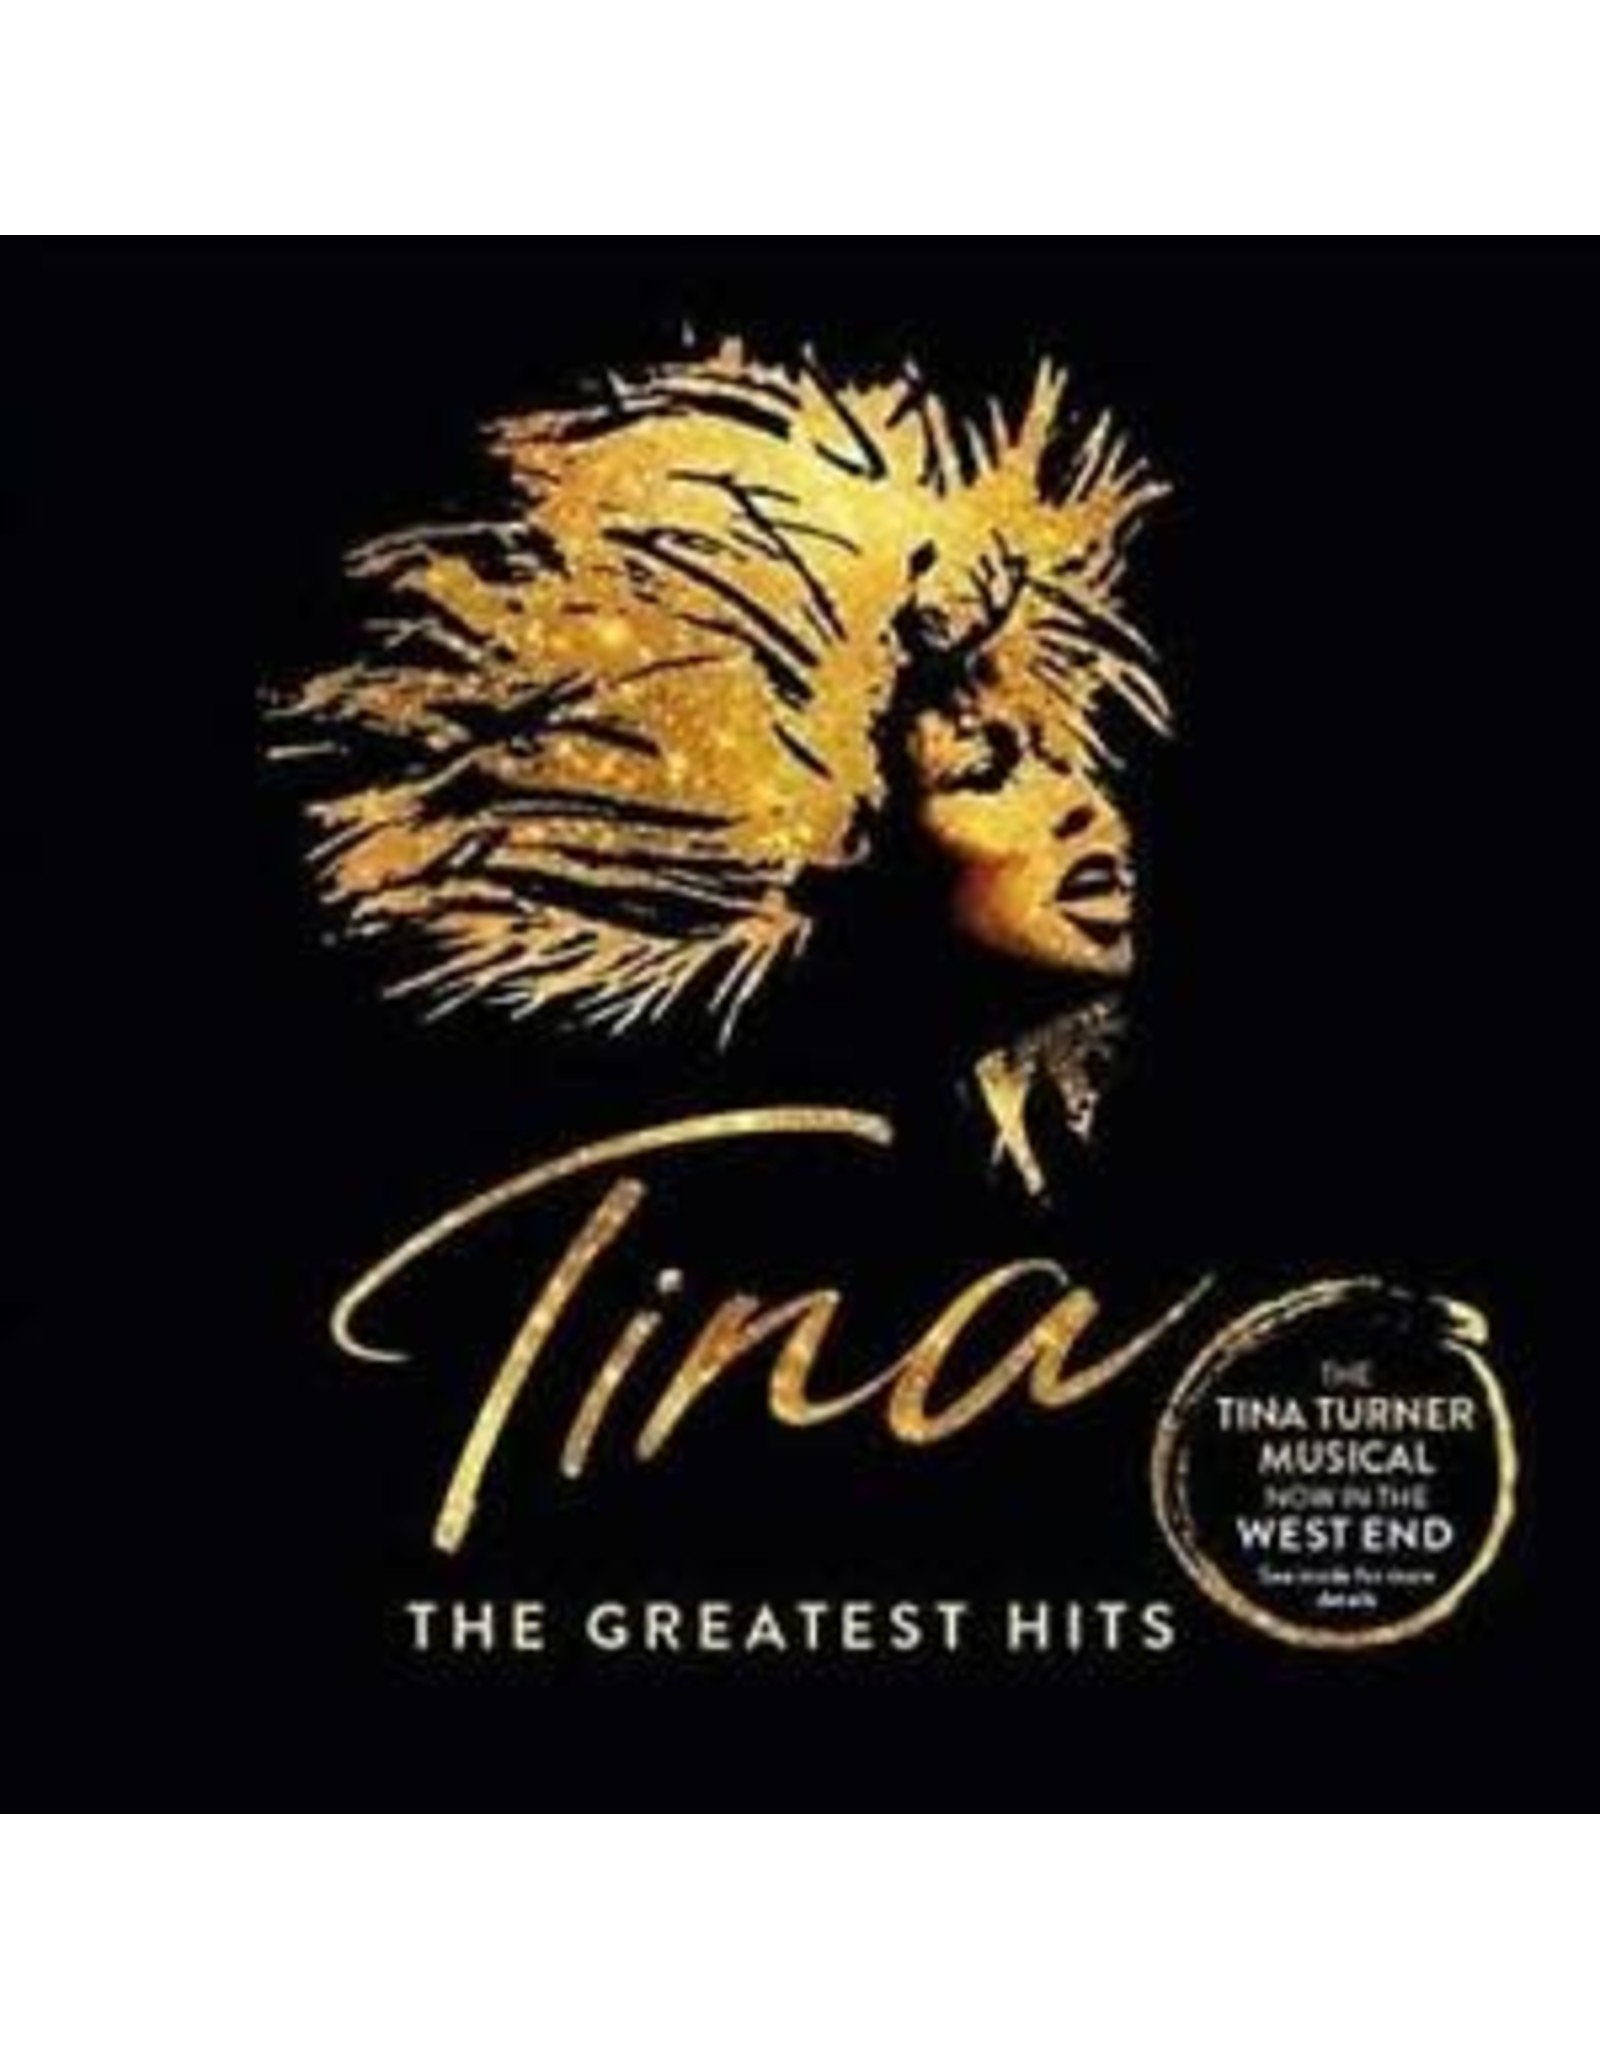 Tuner, Tina - The Greatest Hits 2 CD